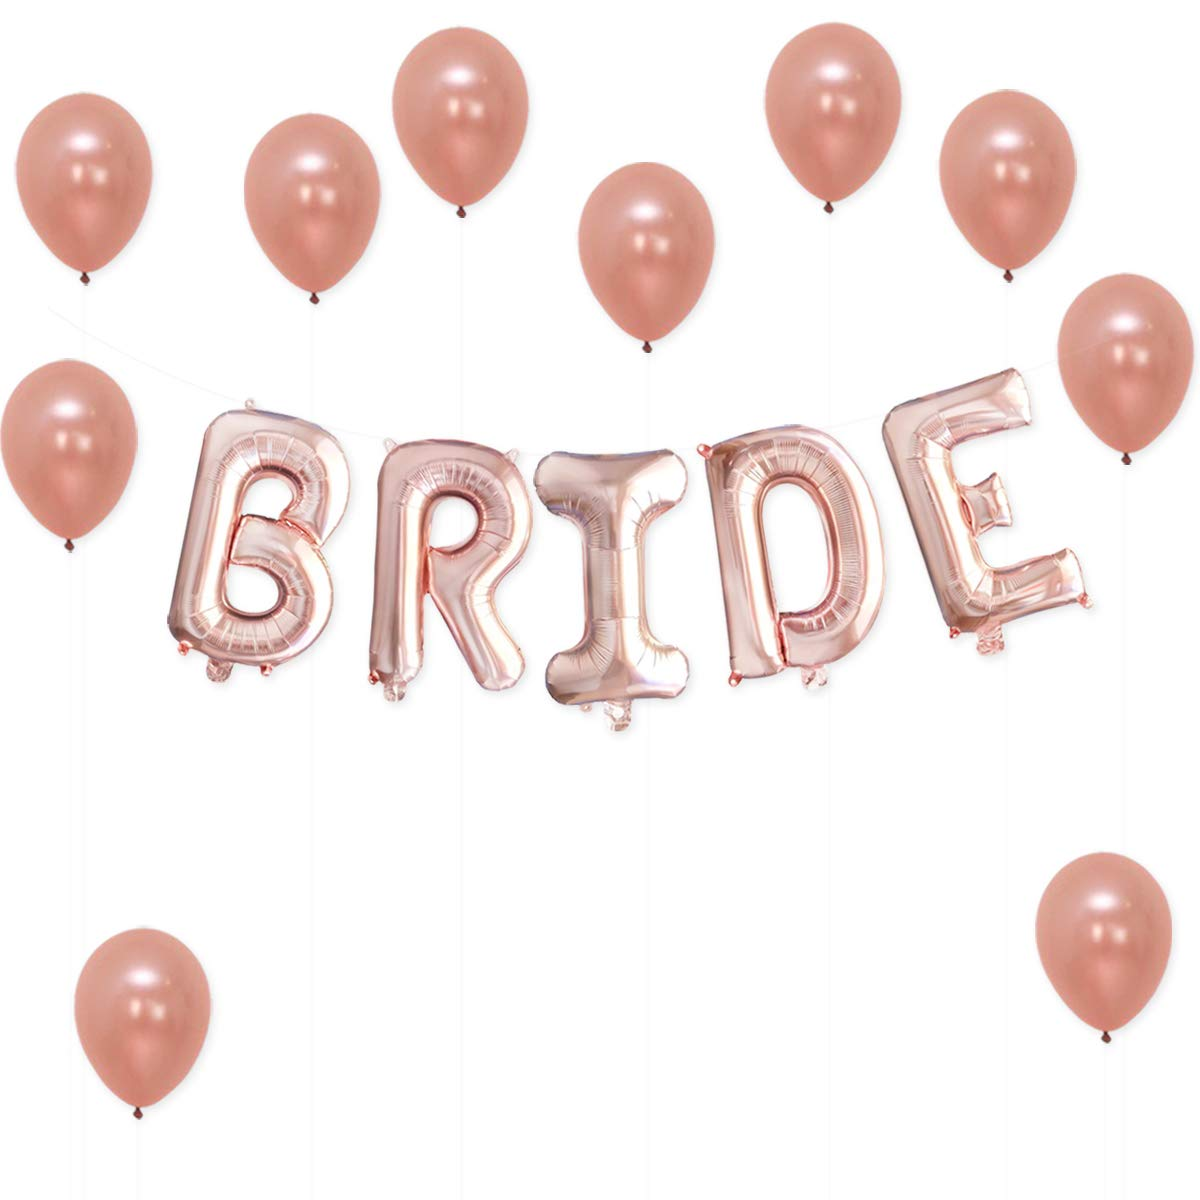 bride rose gold balloons decorations great for bridal shower party cute rose gold bridal